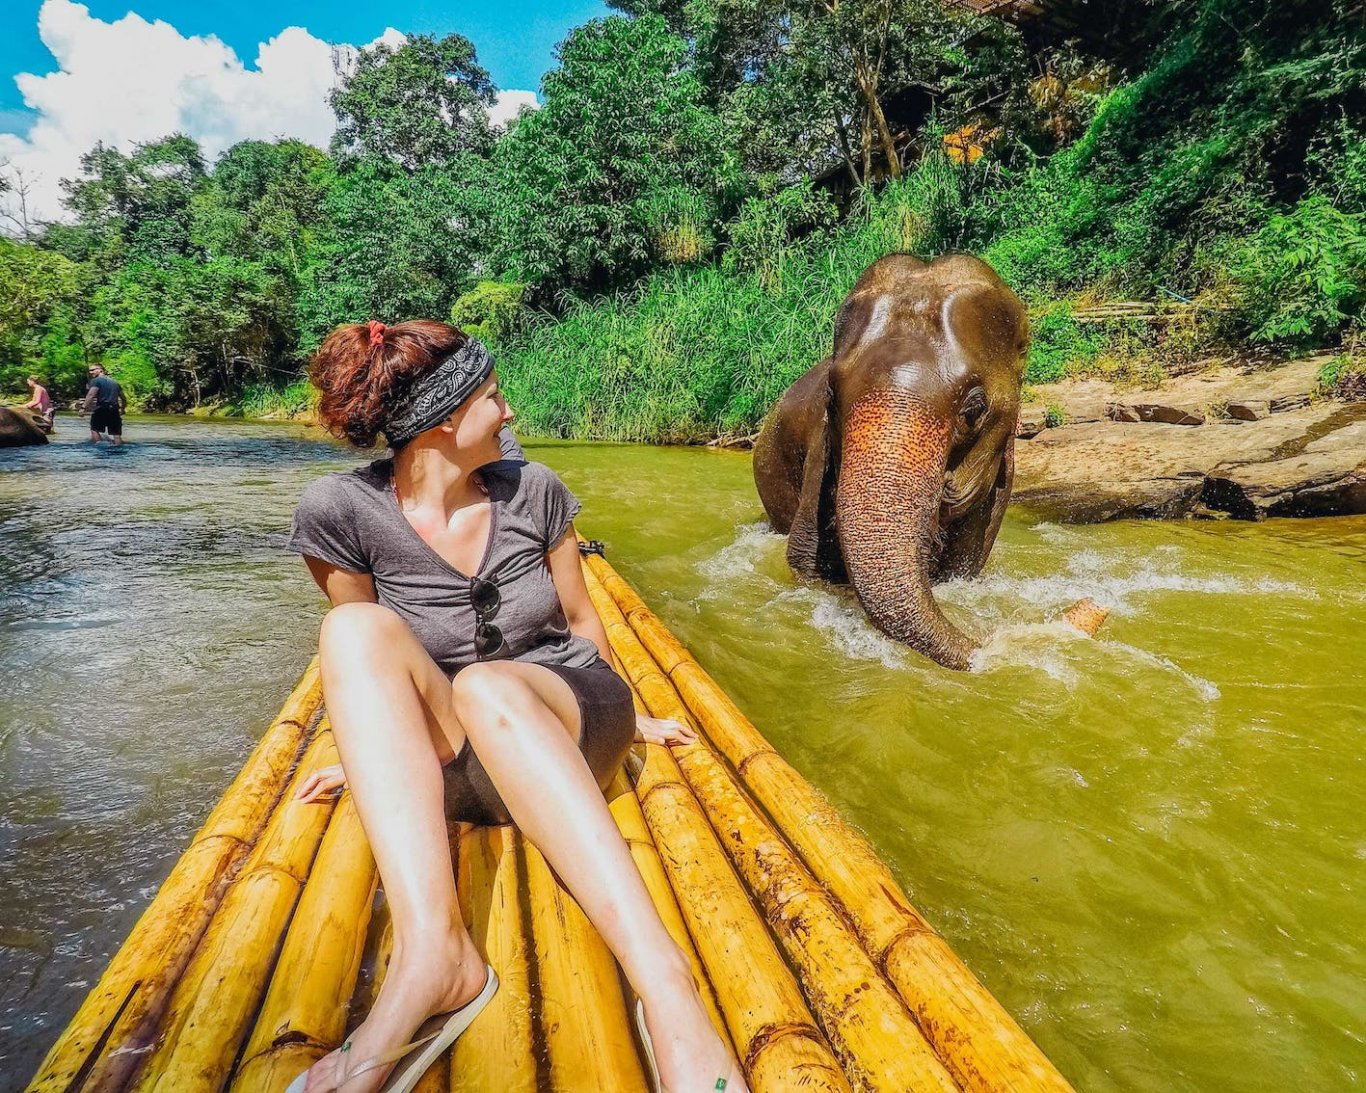 Elephant in river - Northern Thailand